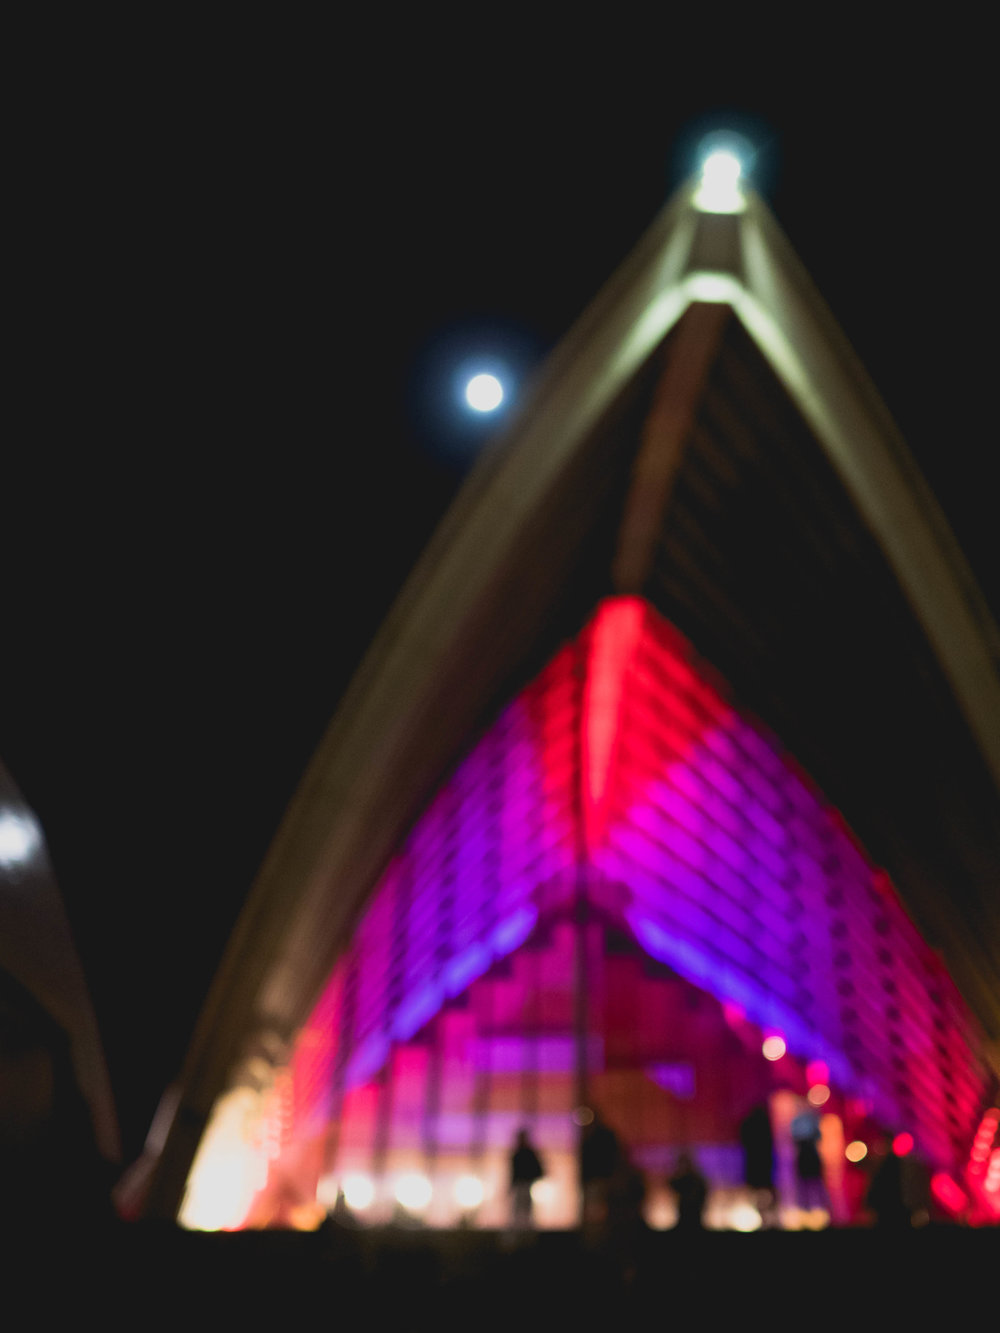 opera house lit up at night.